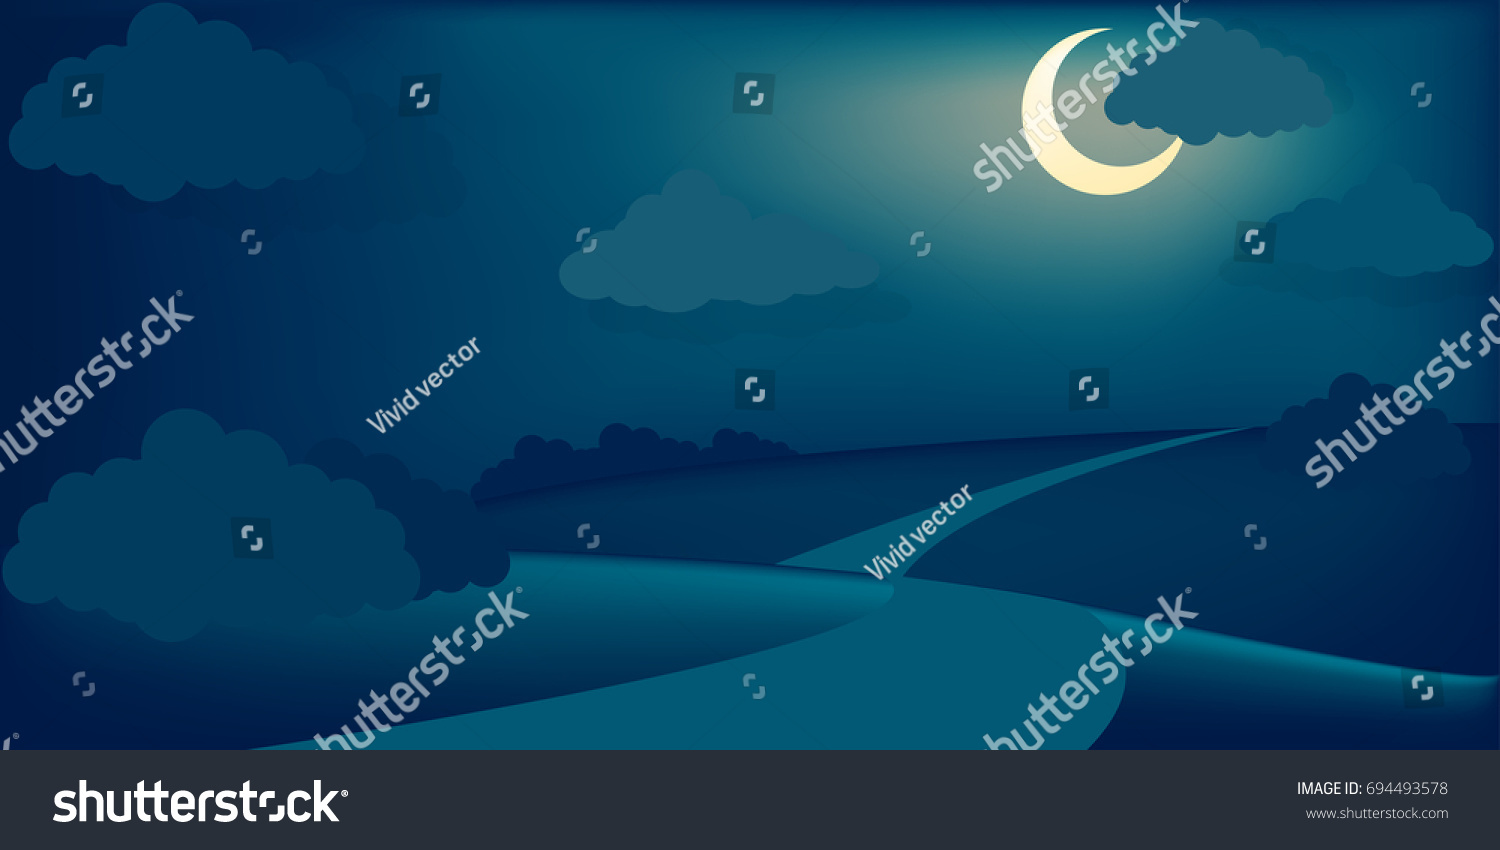 Download Wallpaper Night Cartoon - stock-vector-panoramic-night-landscape-vector-background-cartoon-wallpaper-of-sky-half-moon-hill-road-and-694493578  Picture.jpg